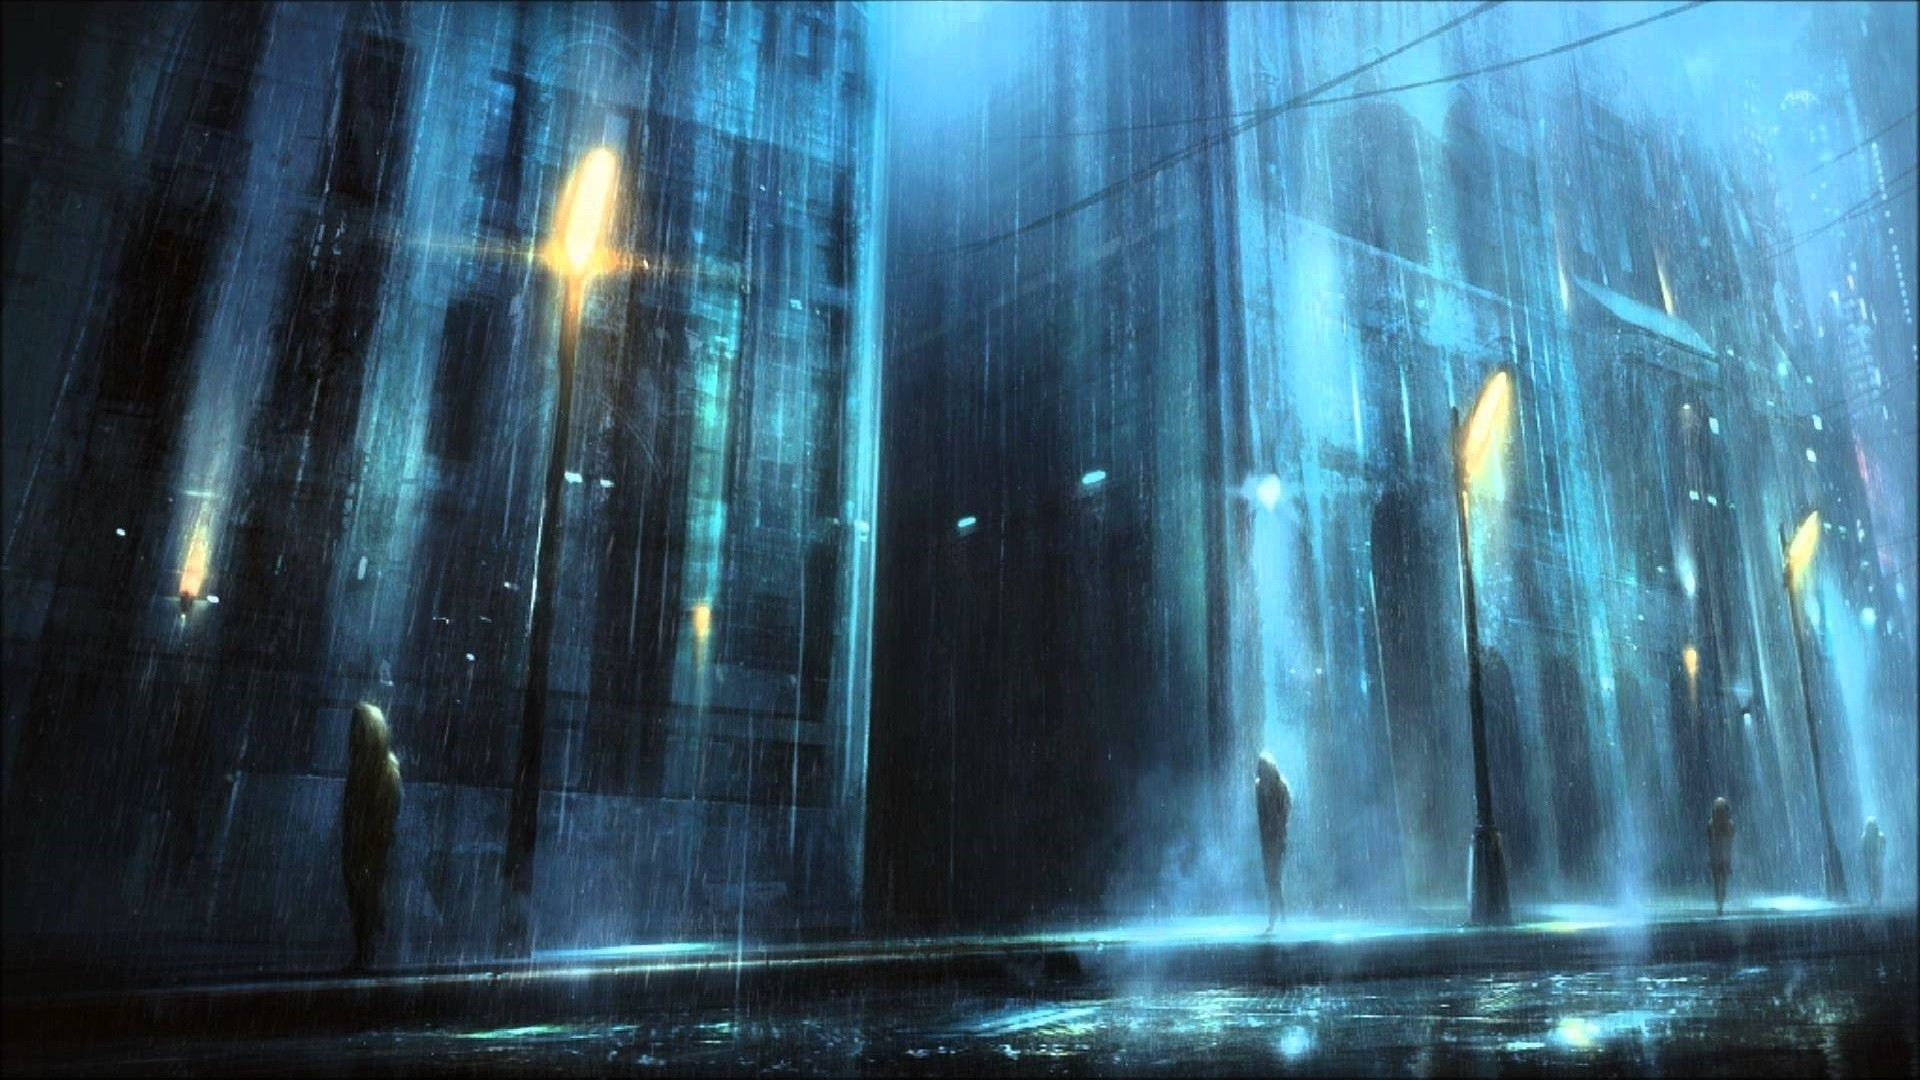 Rain Art wallpaper for pc